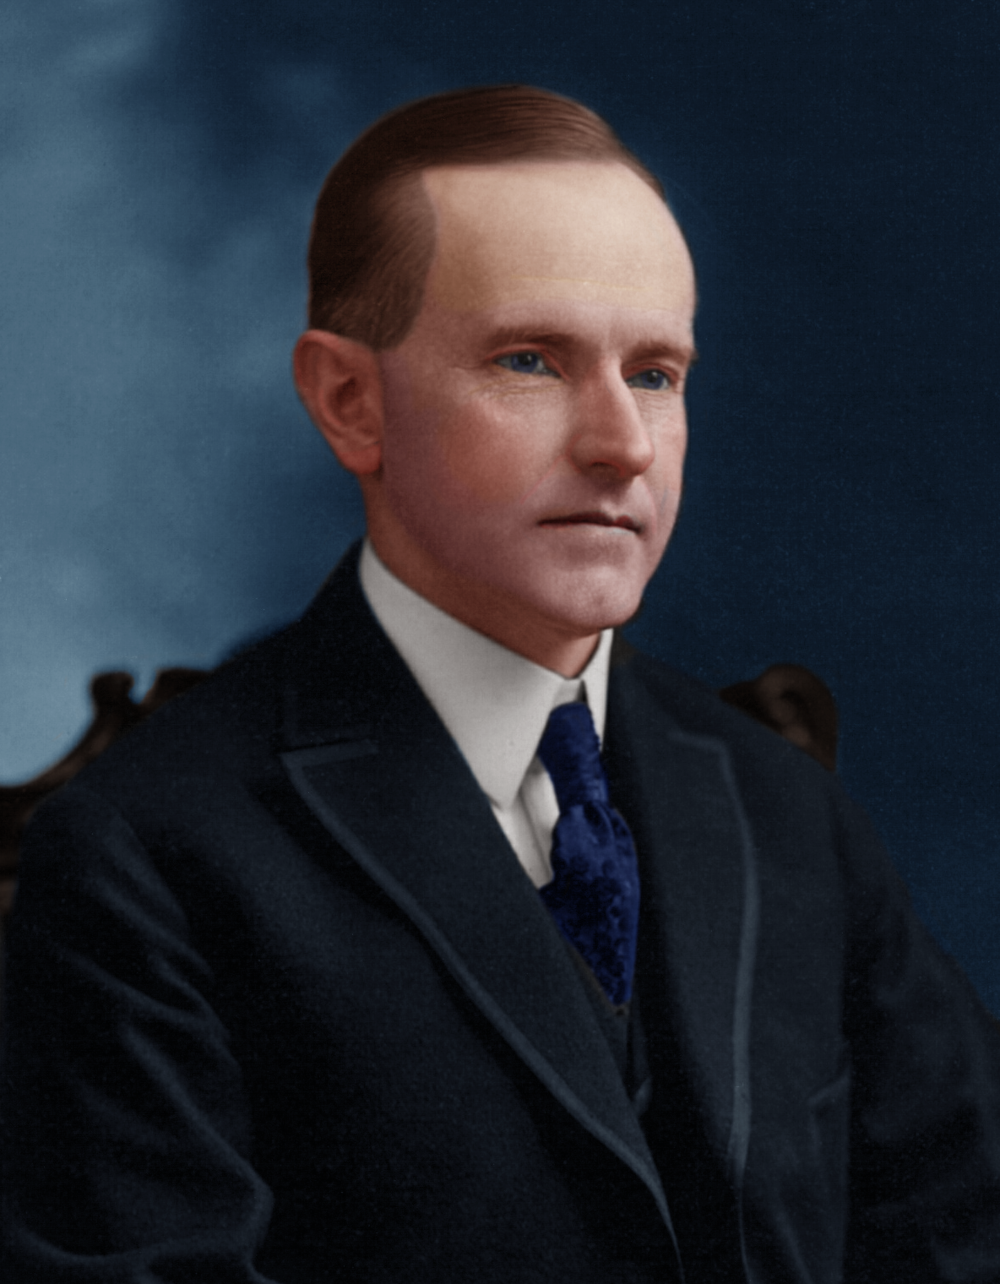 Calvin Coolidge, 30th President of the United States, 1923-1929